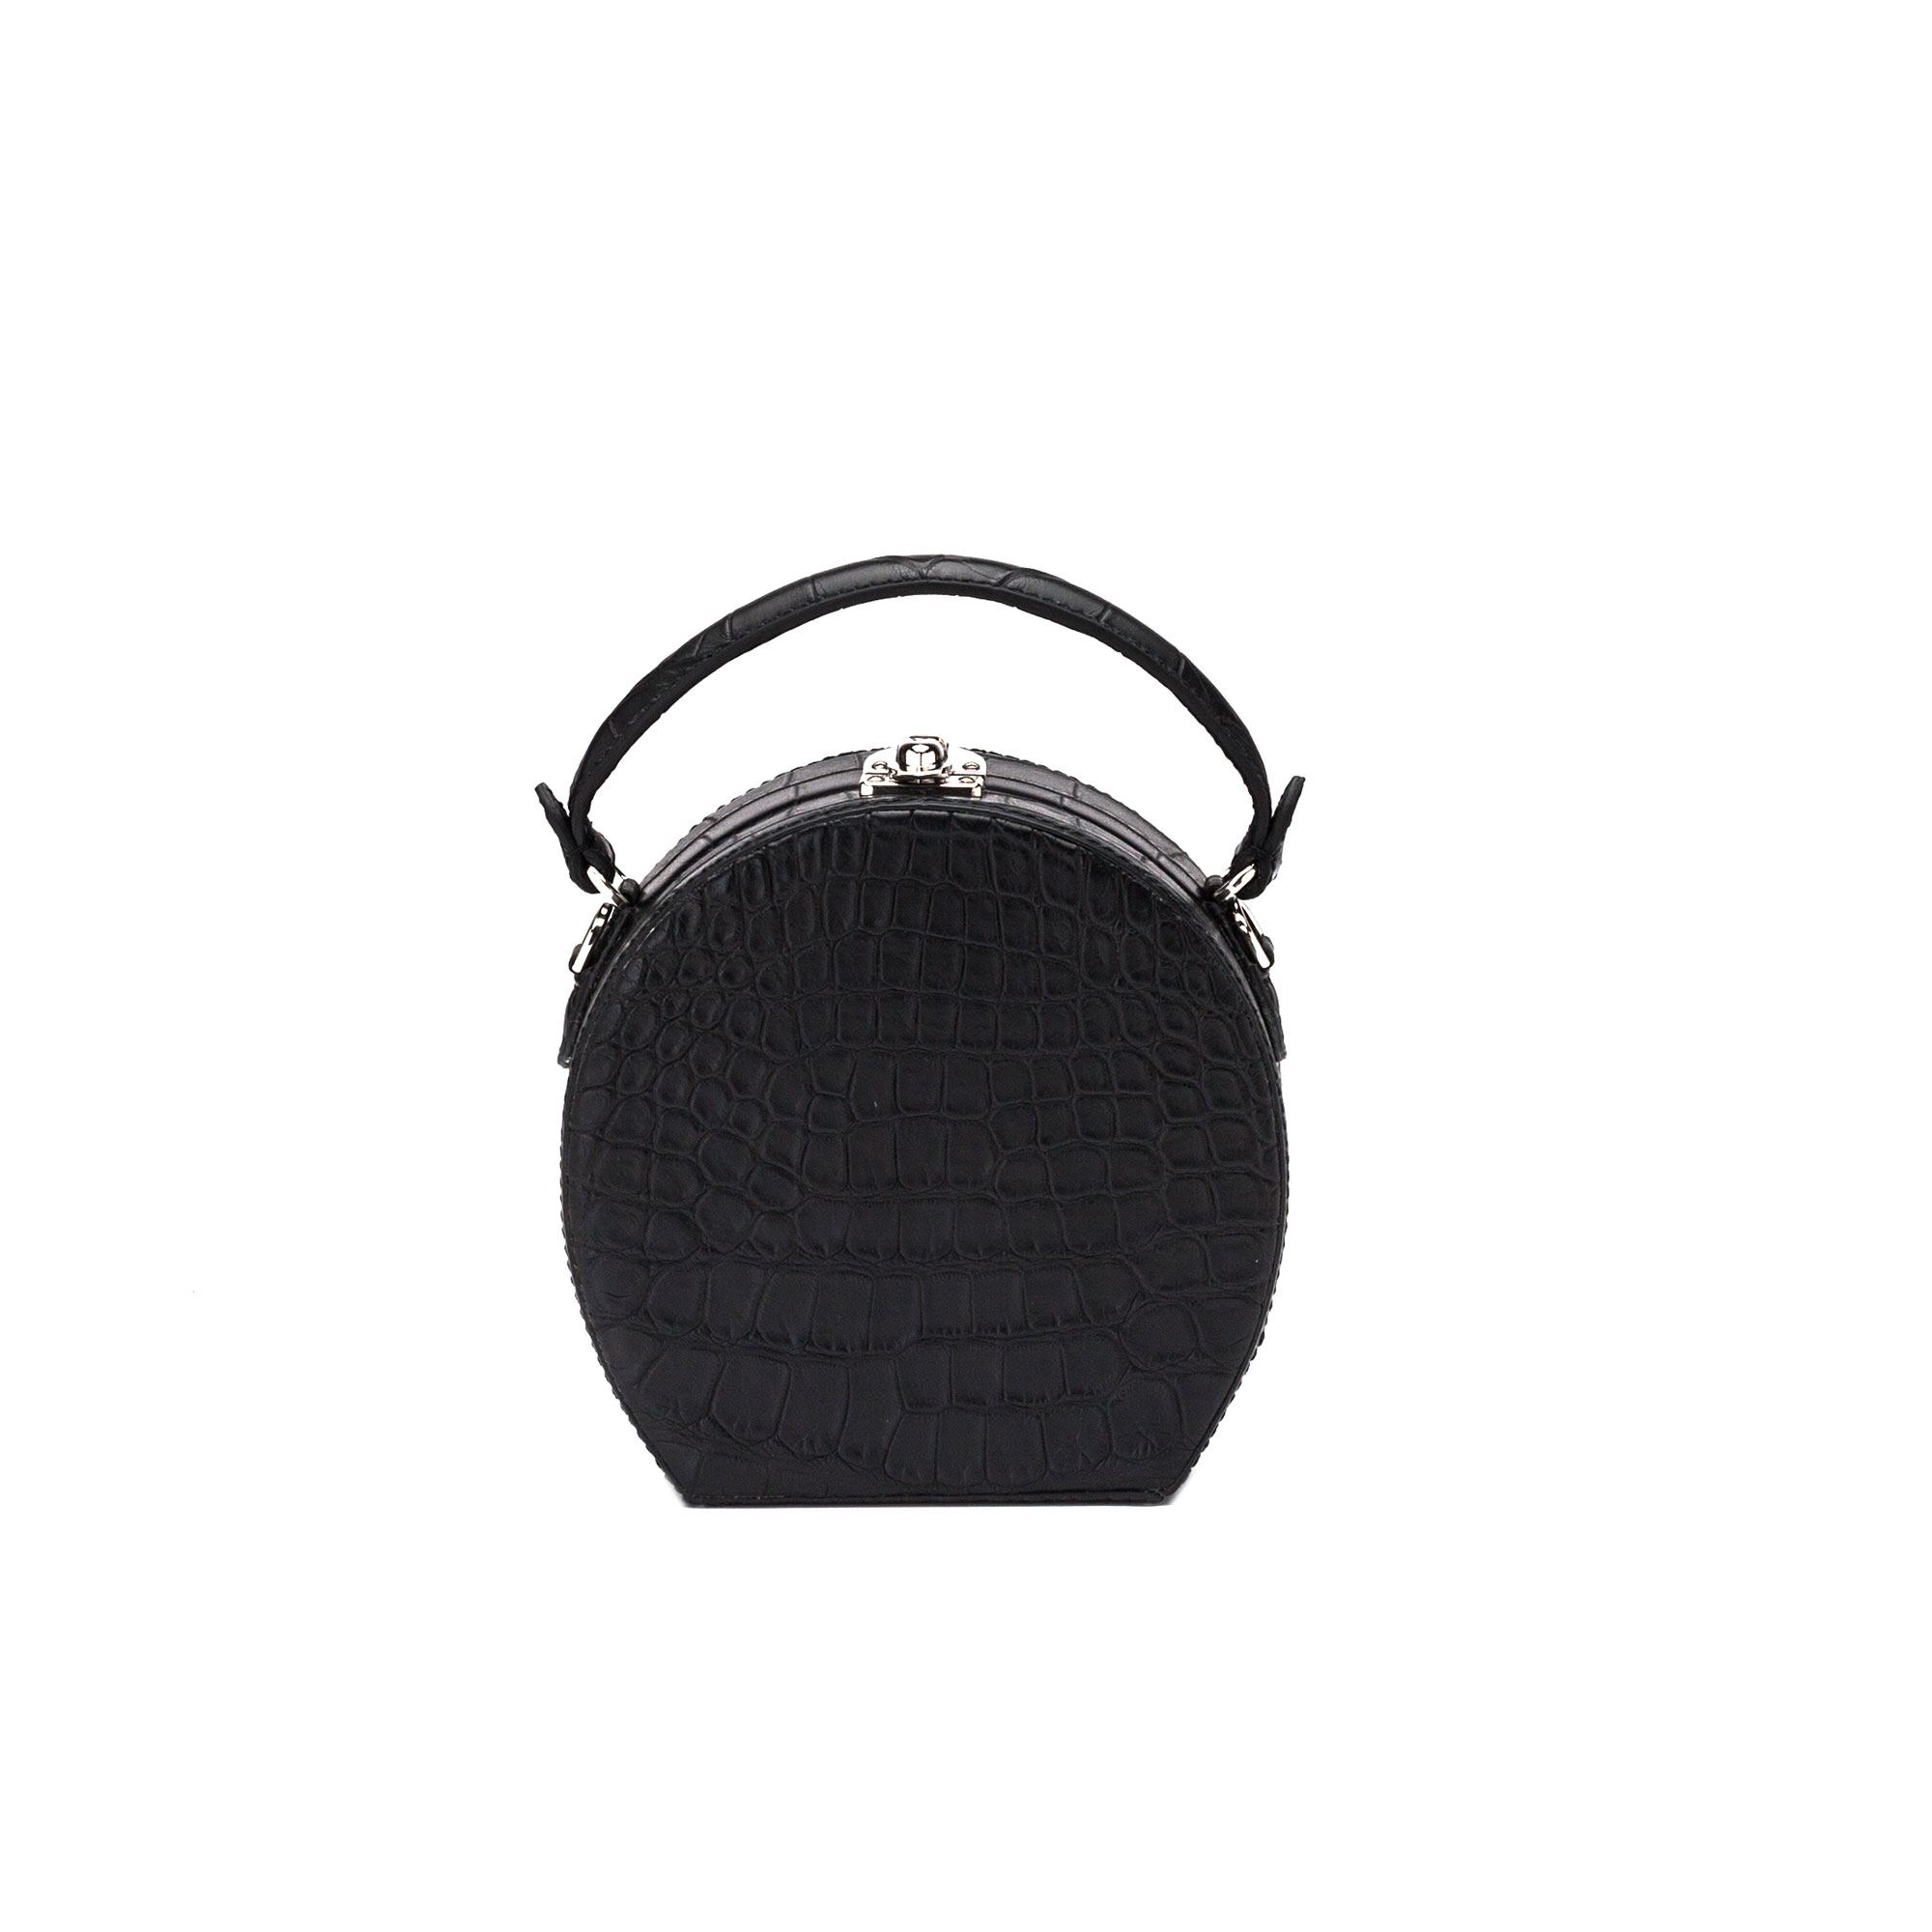 The black alligator Regular Bertoncina bag by Bertoni 1949 01